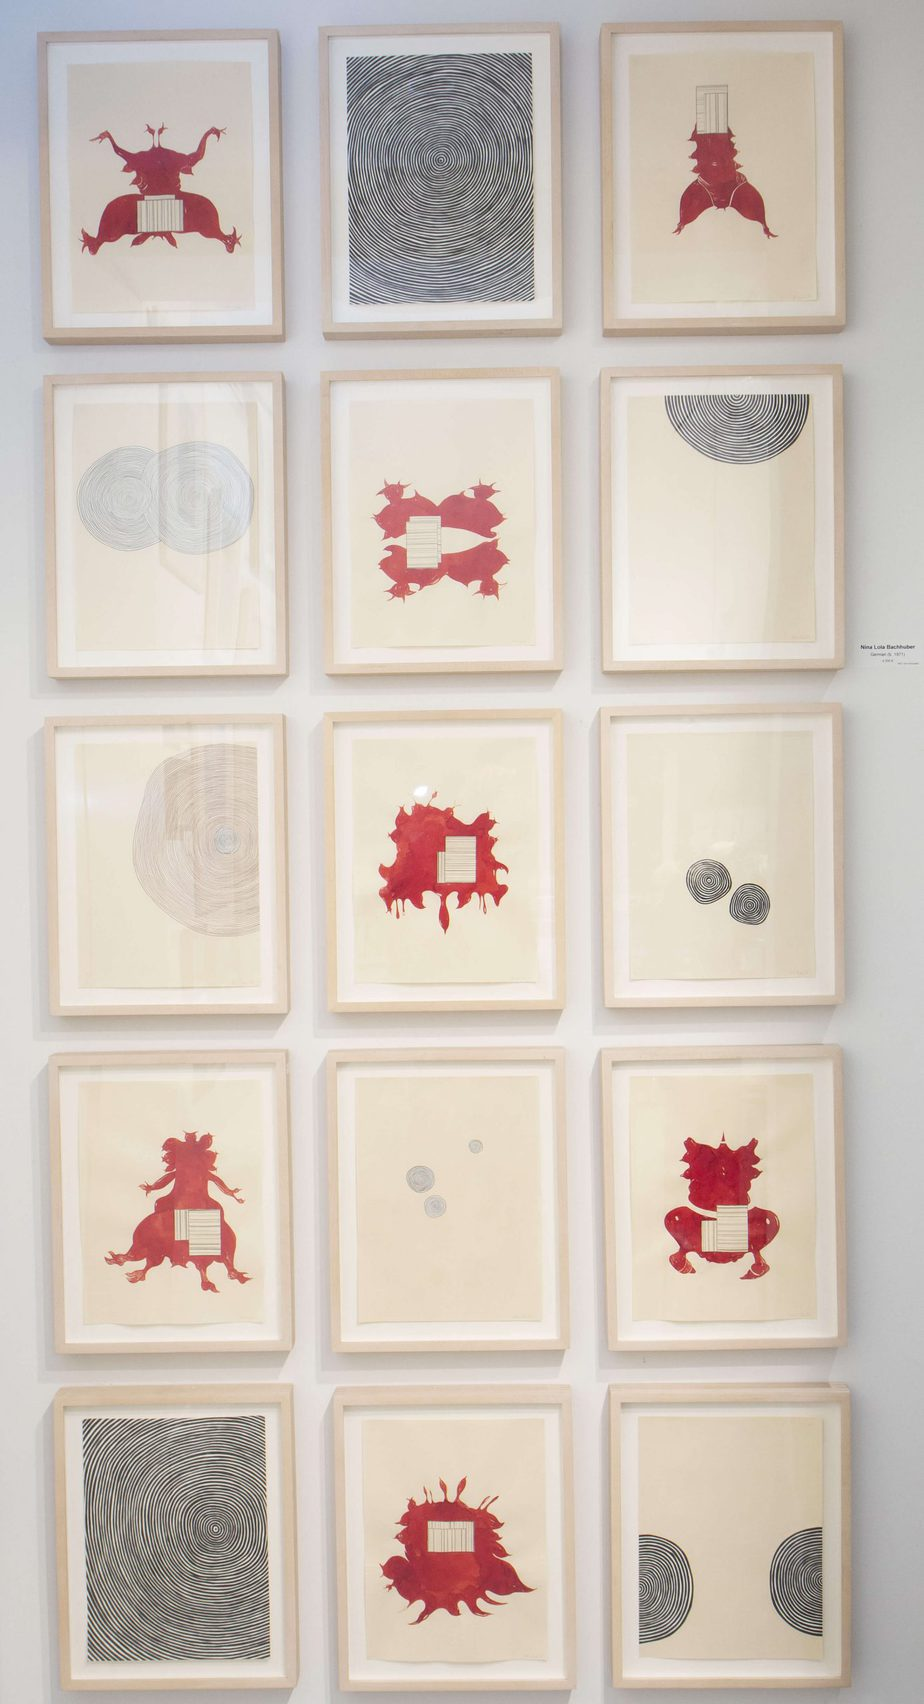 Nina Lola Bachhuber Untitled, 2004 Ink, pencil, collage on paper 16 drawings, each 25 x 33 cm